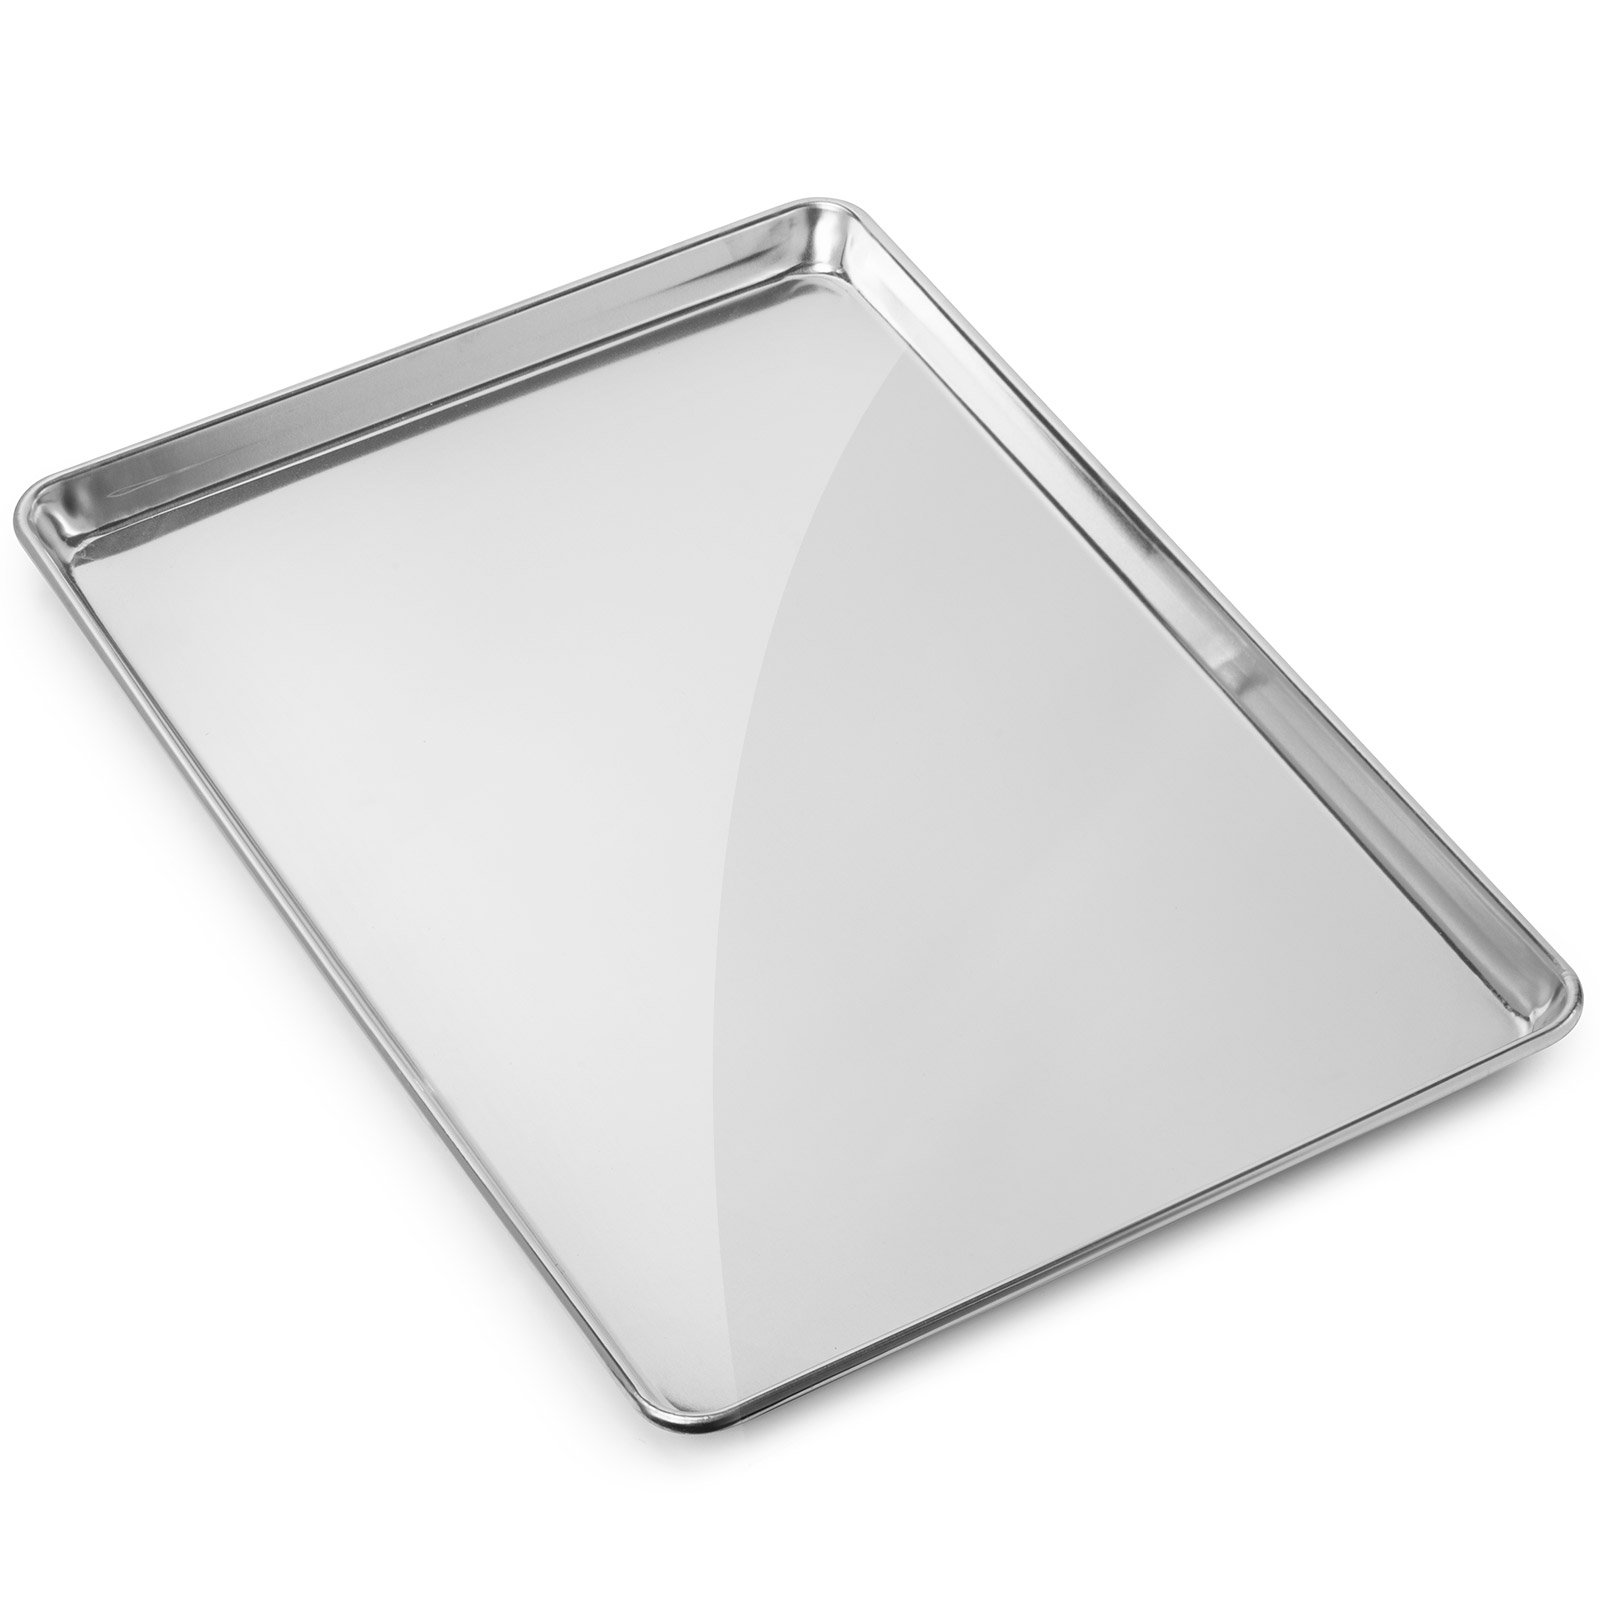 Cheap Bunnings Aluminium Sheet, find Bunnings Aluminium